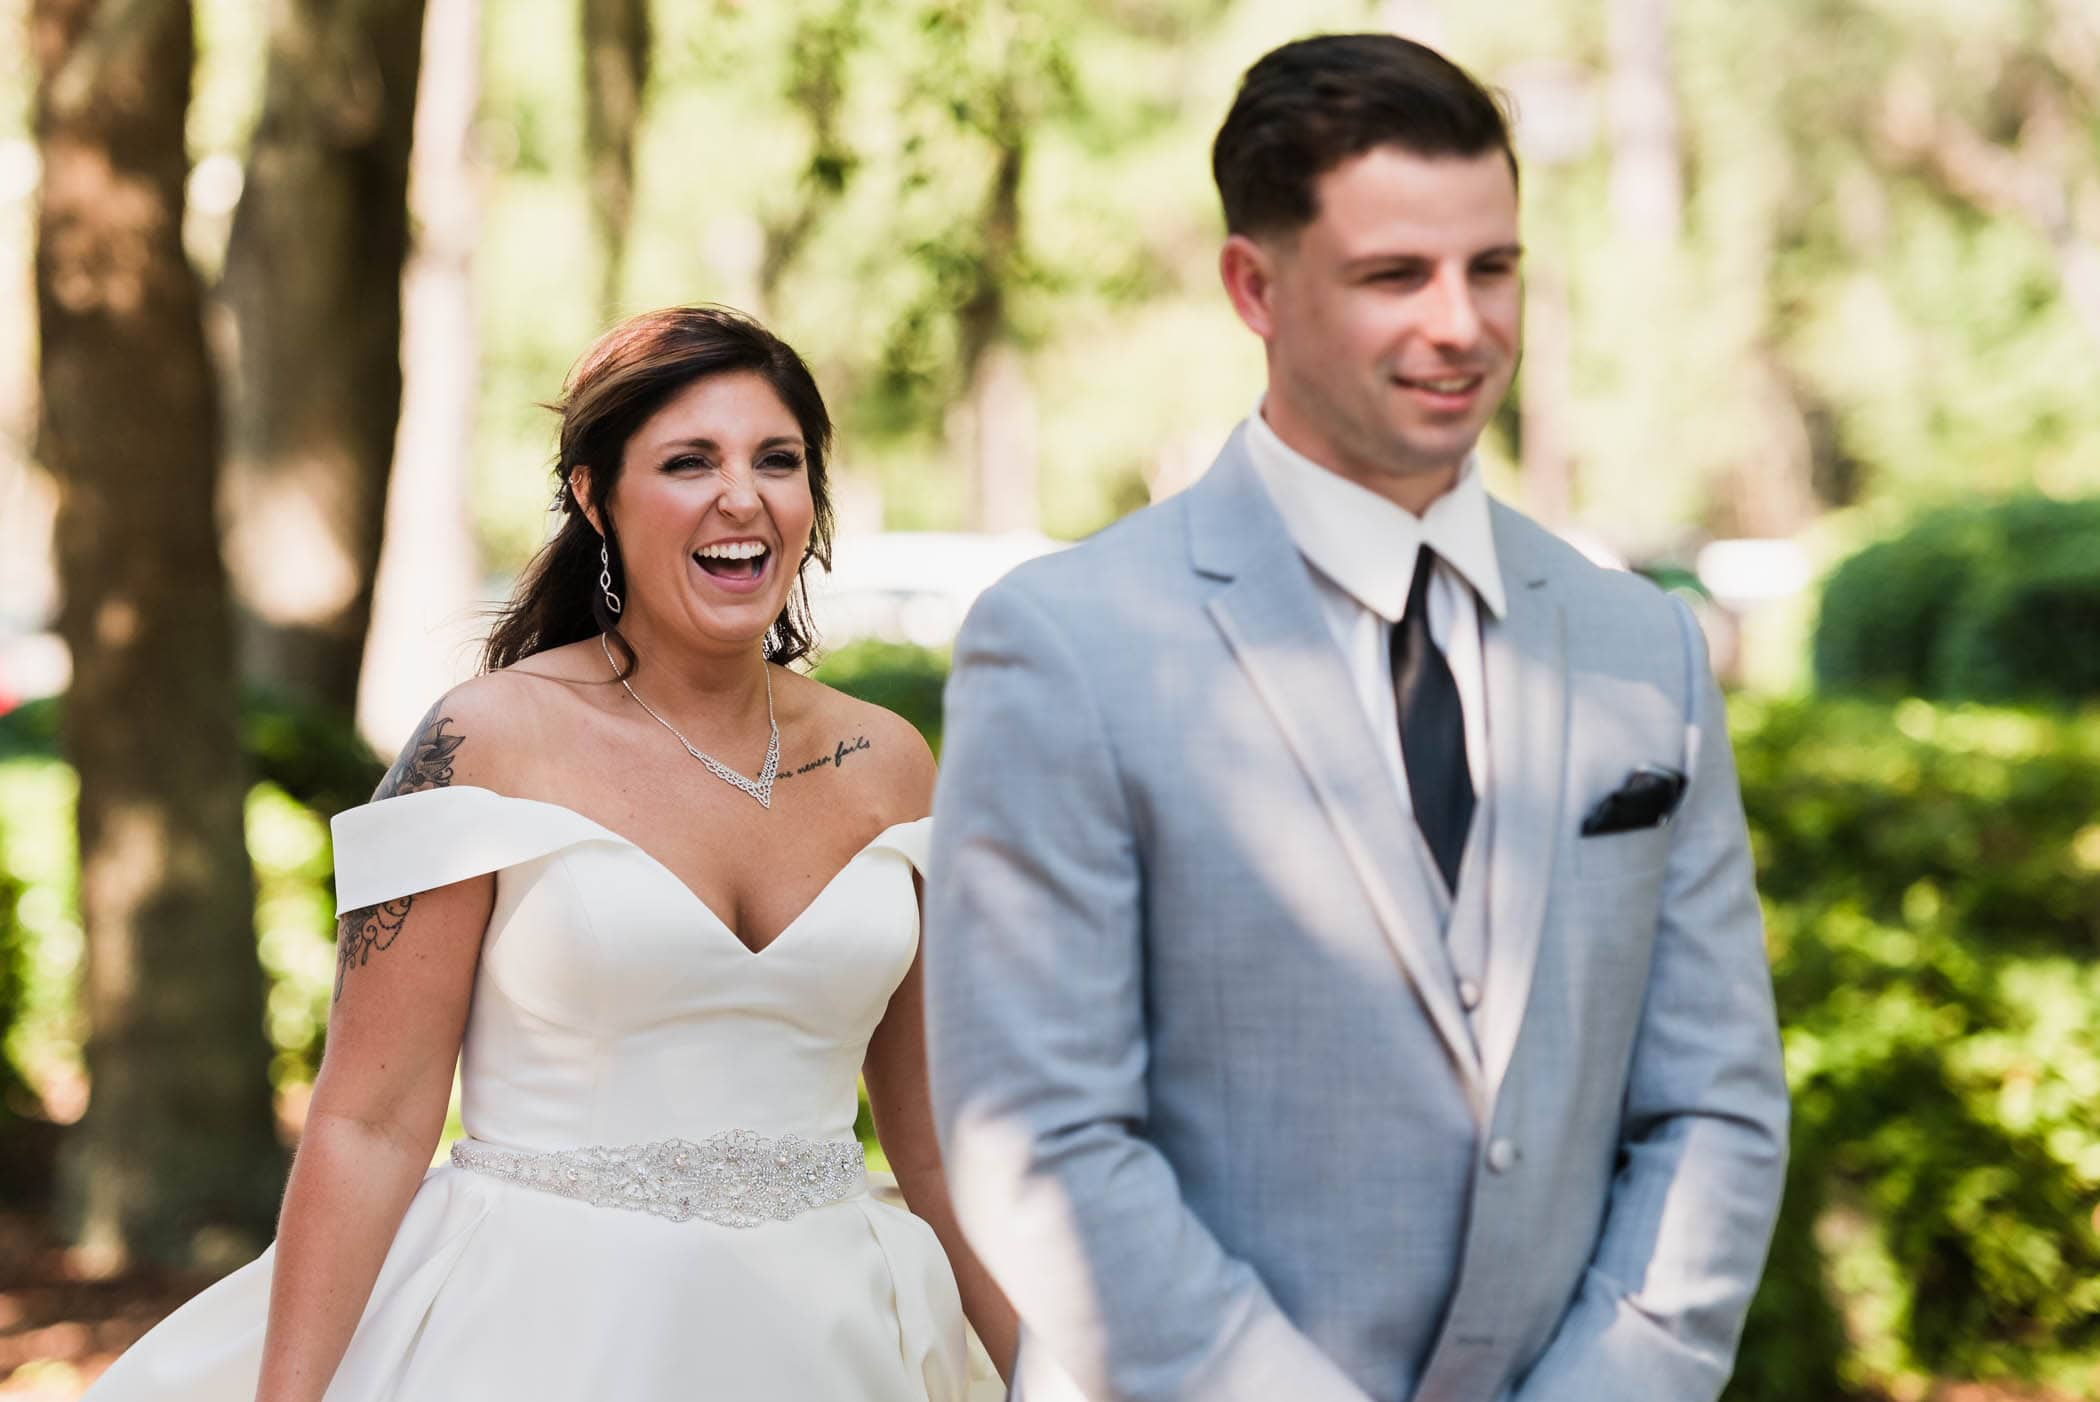 Brides face as she walks up behind her groom for the first look by Susan DeLoach Photography SC wedding photographers